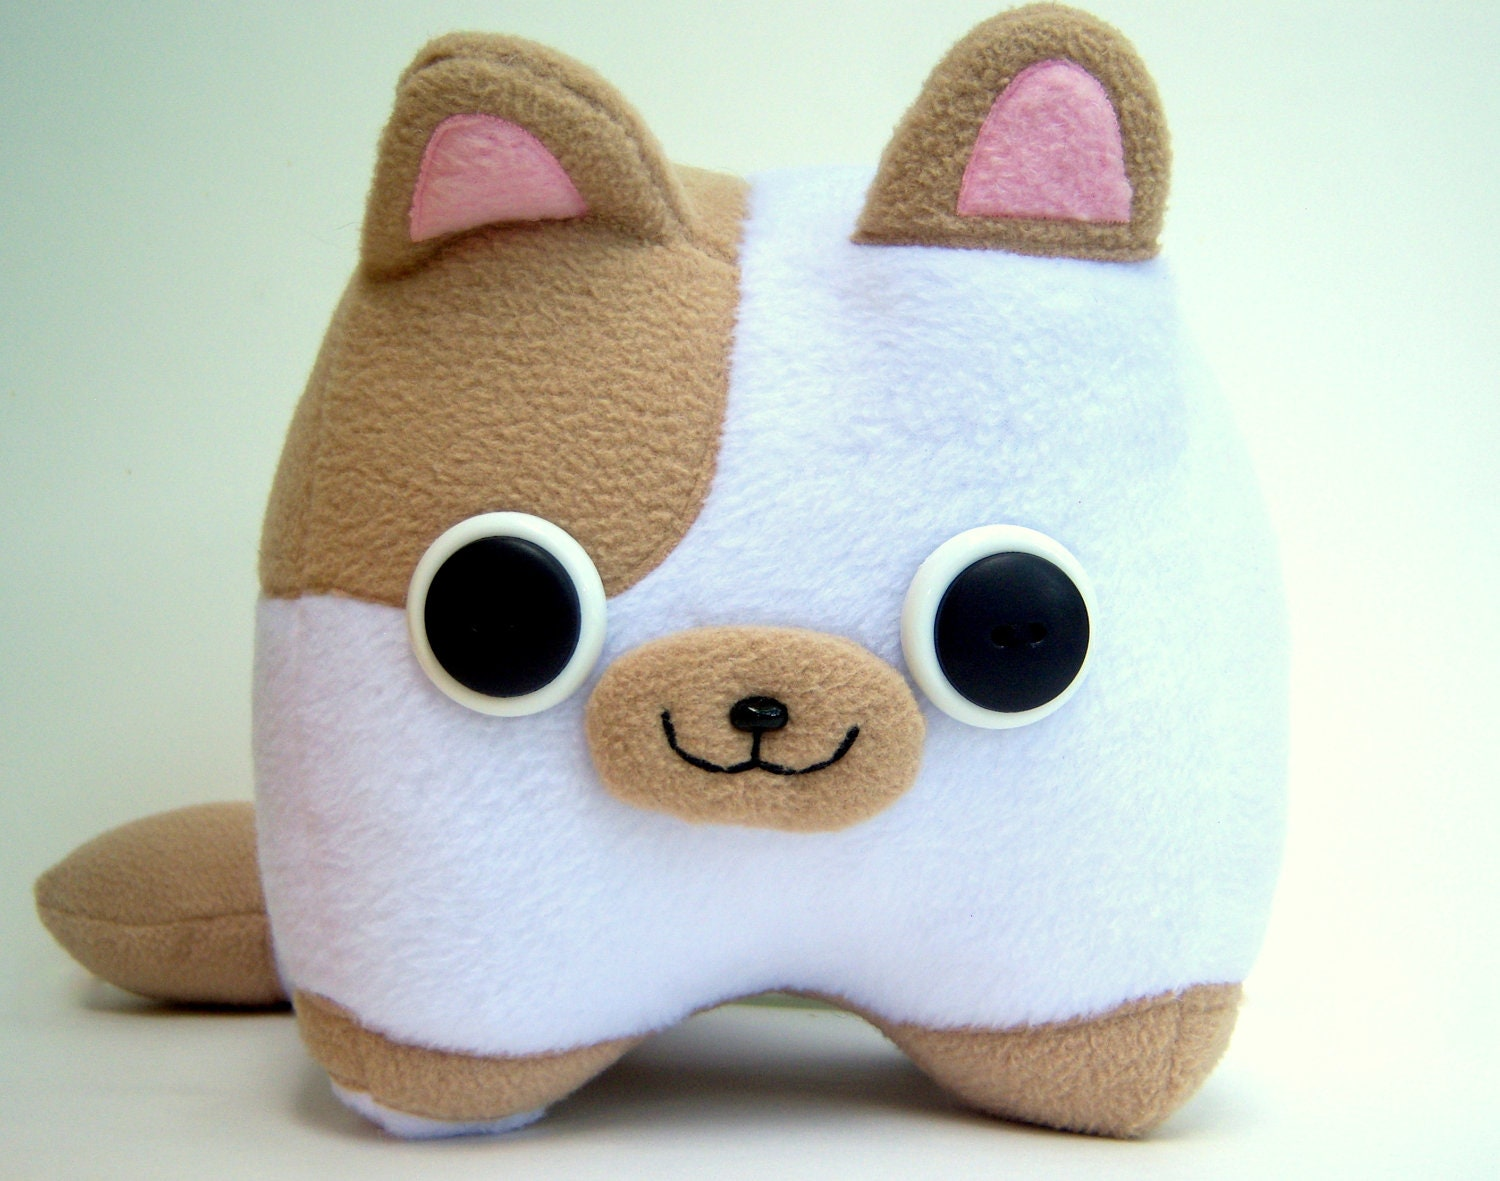 Adventure Time Cake the Cat XL Baby Cake Plush by Plushimi